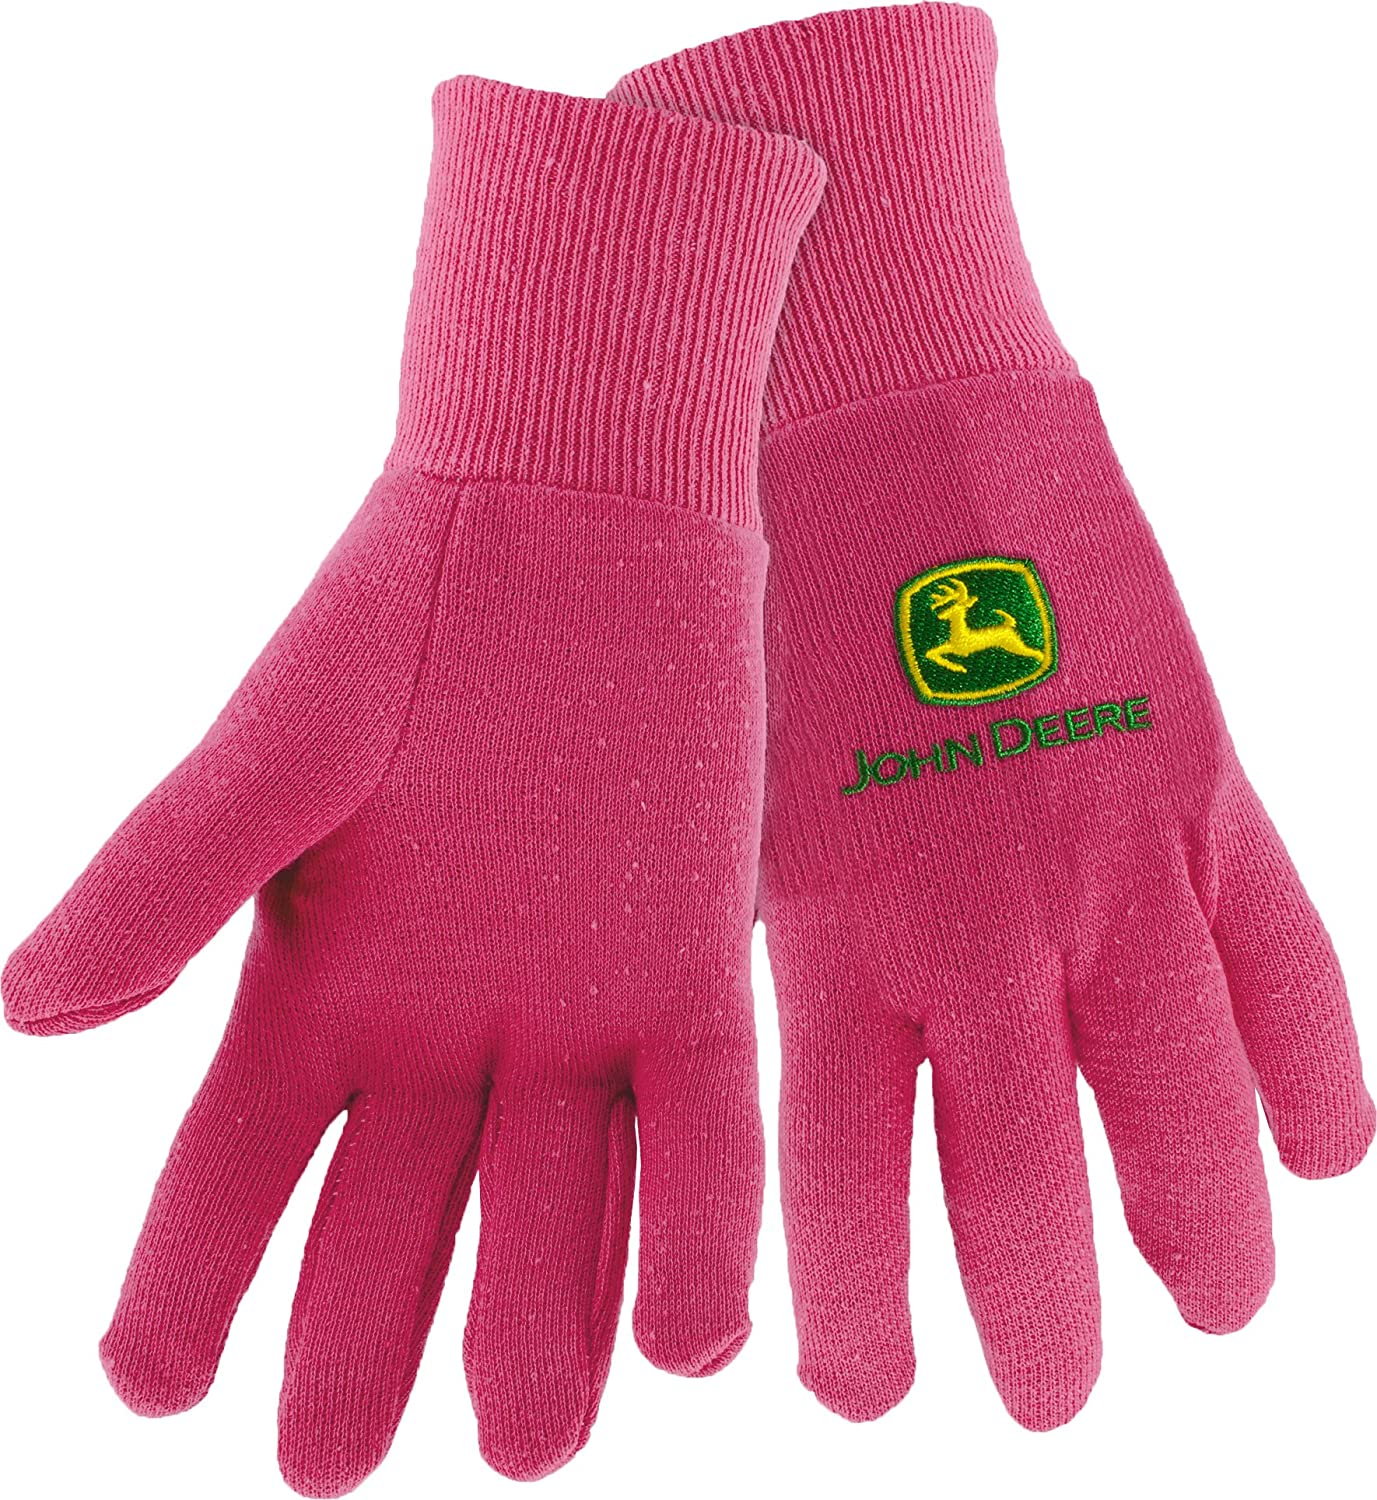 West Chester John Deere JD90003 Knit Polyester/Cotton Insulated Jersey Work Gloves: Pink, Women's One Size Fits Most, 1 Pair